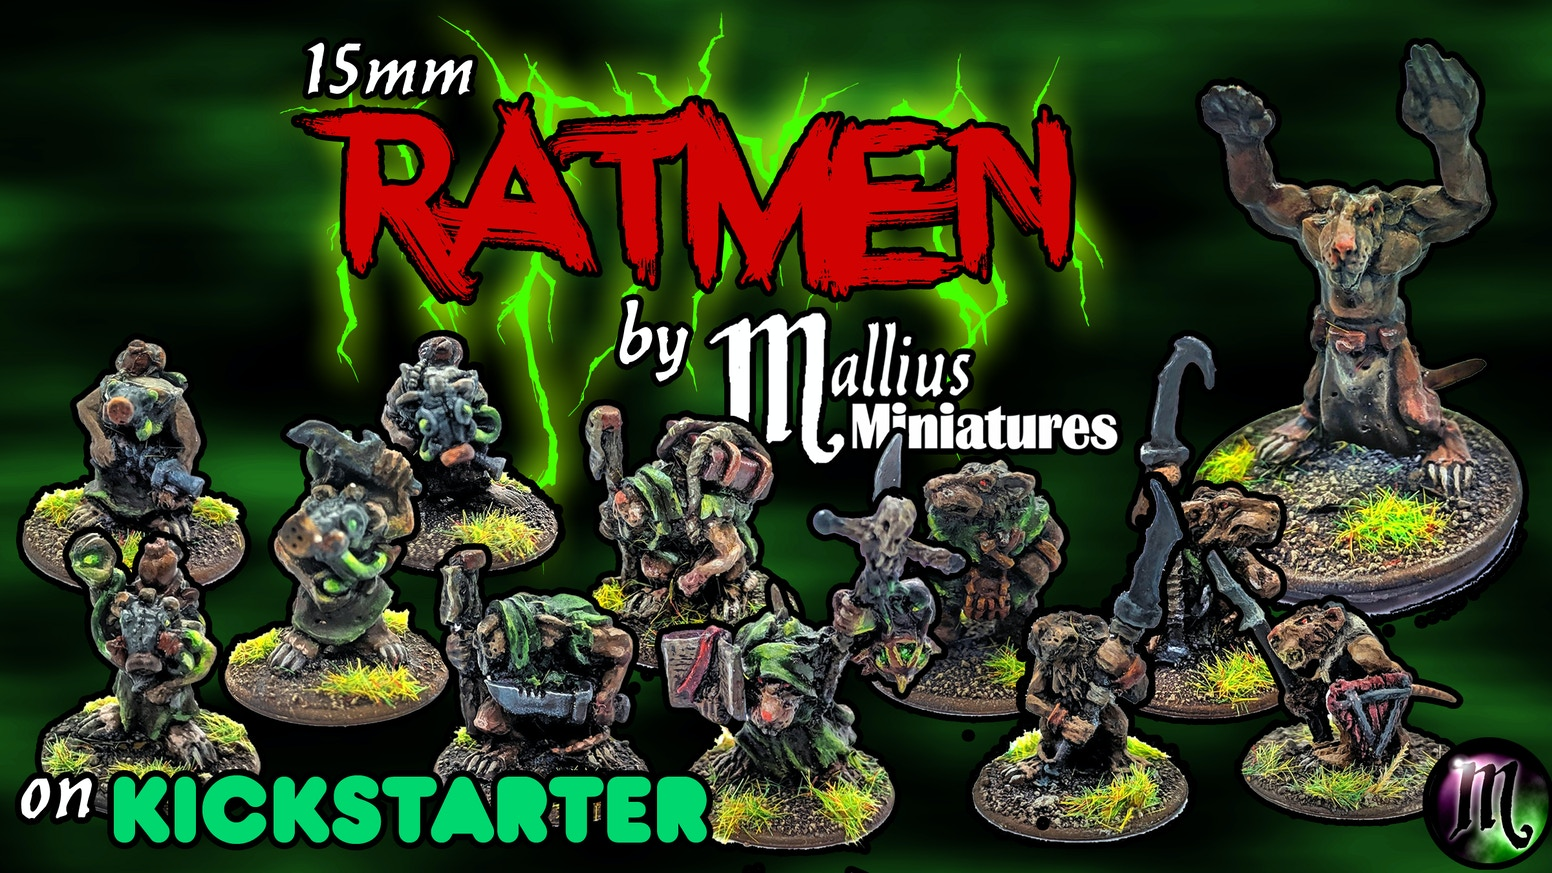 A Series of Hand Sculpted 15mm Scale Resin Cast Rat-Men Miniatures